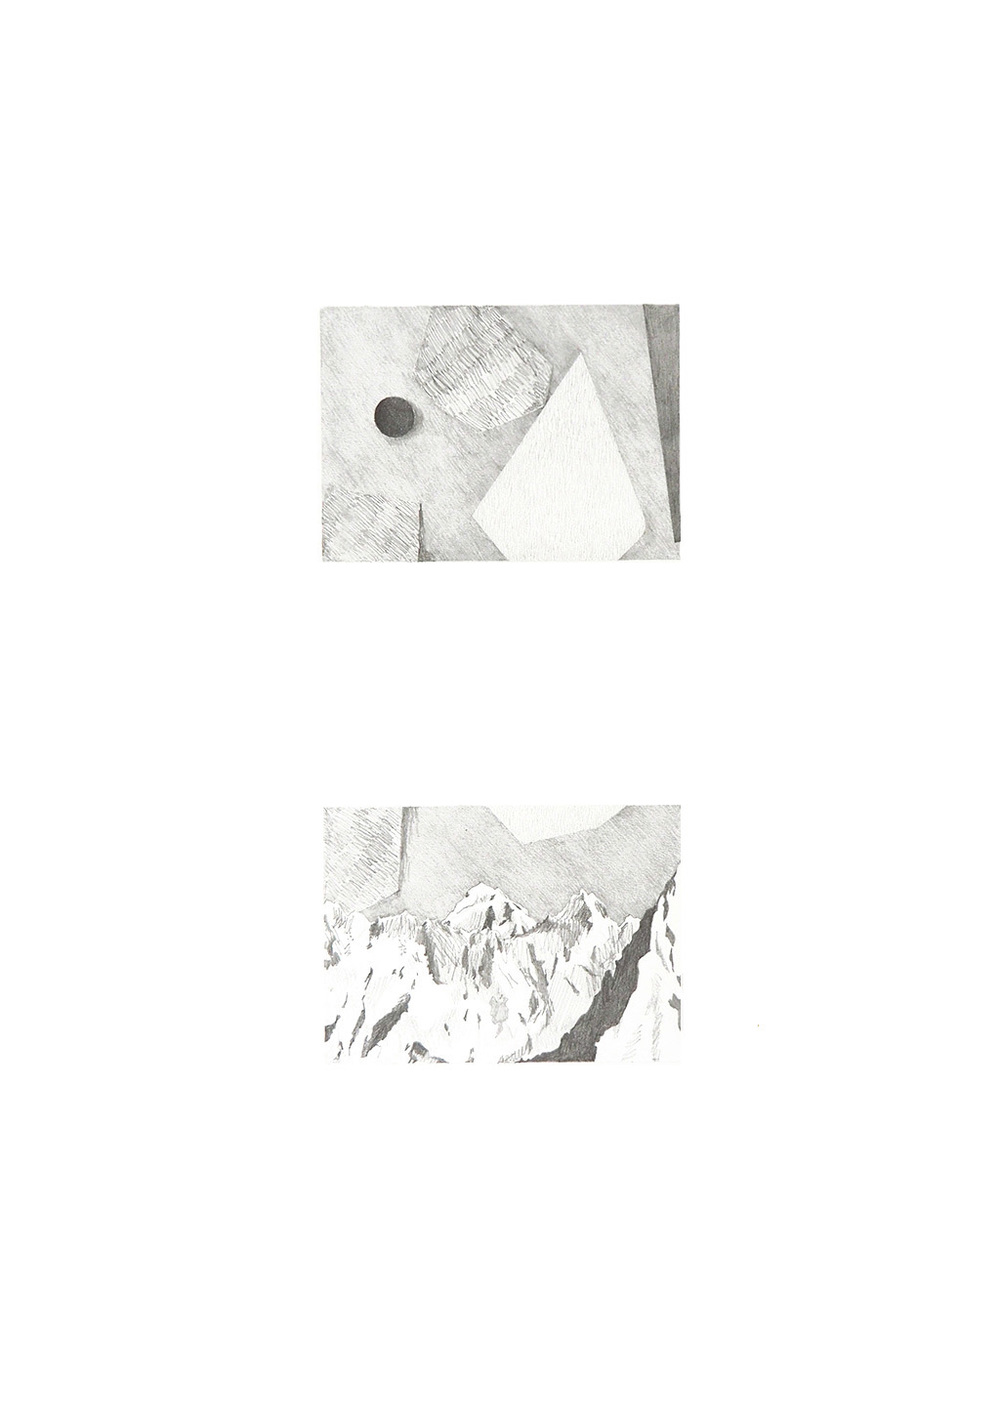 Mountains and abstractions 1, 2016, pencil and collage on  paper, 59 x 42 cm, Eli Maria Lundgaard.jpg